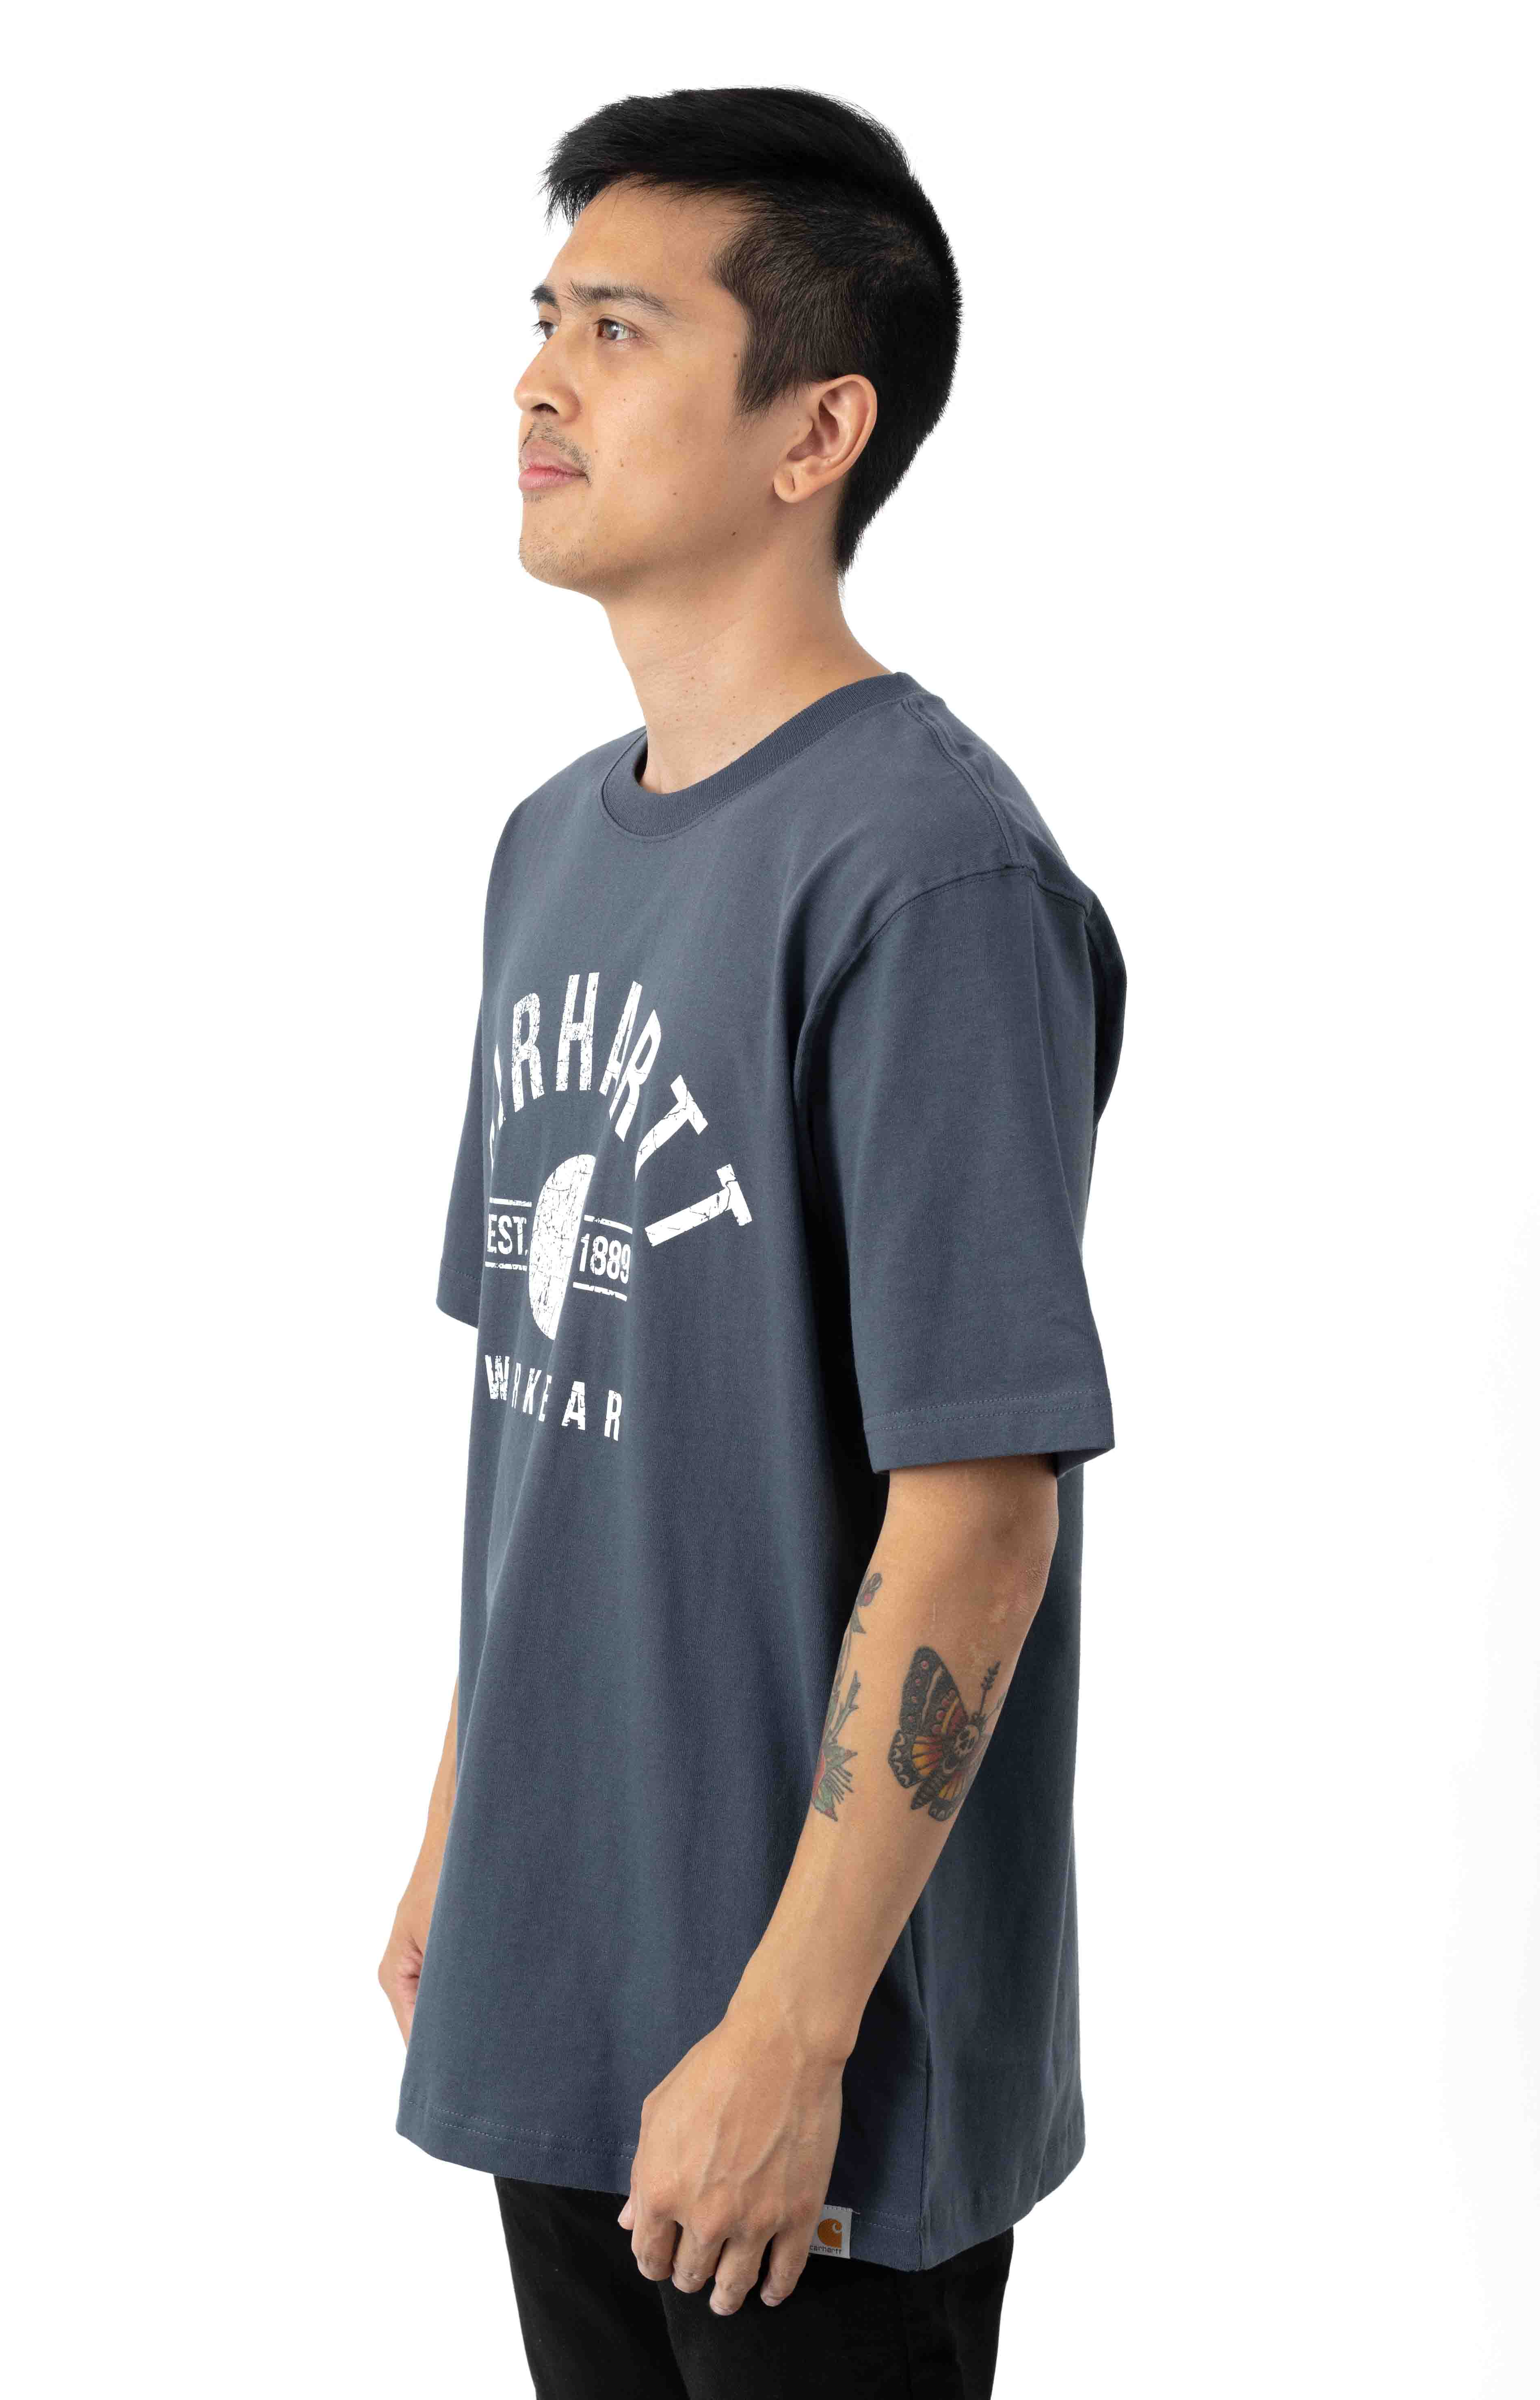 (104582) Relaxed-Fit Workwear Graphic T-Shirt - Bluestone  2